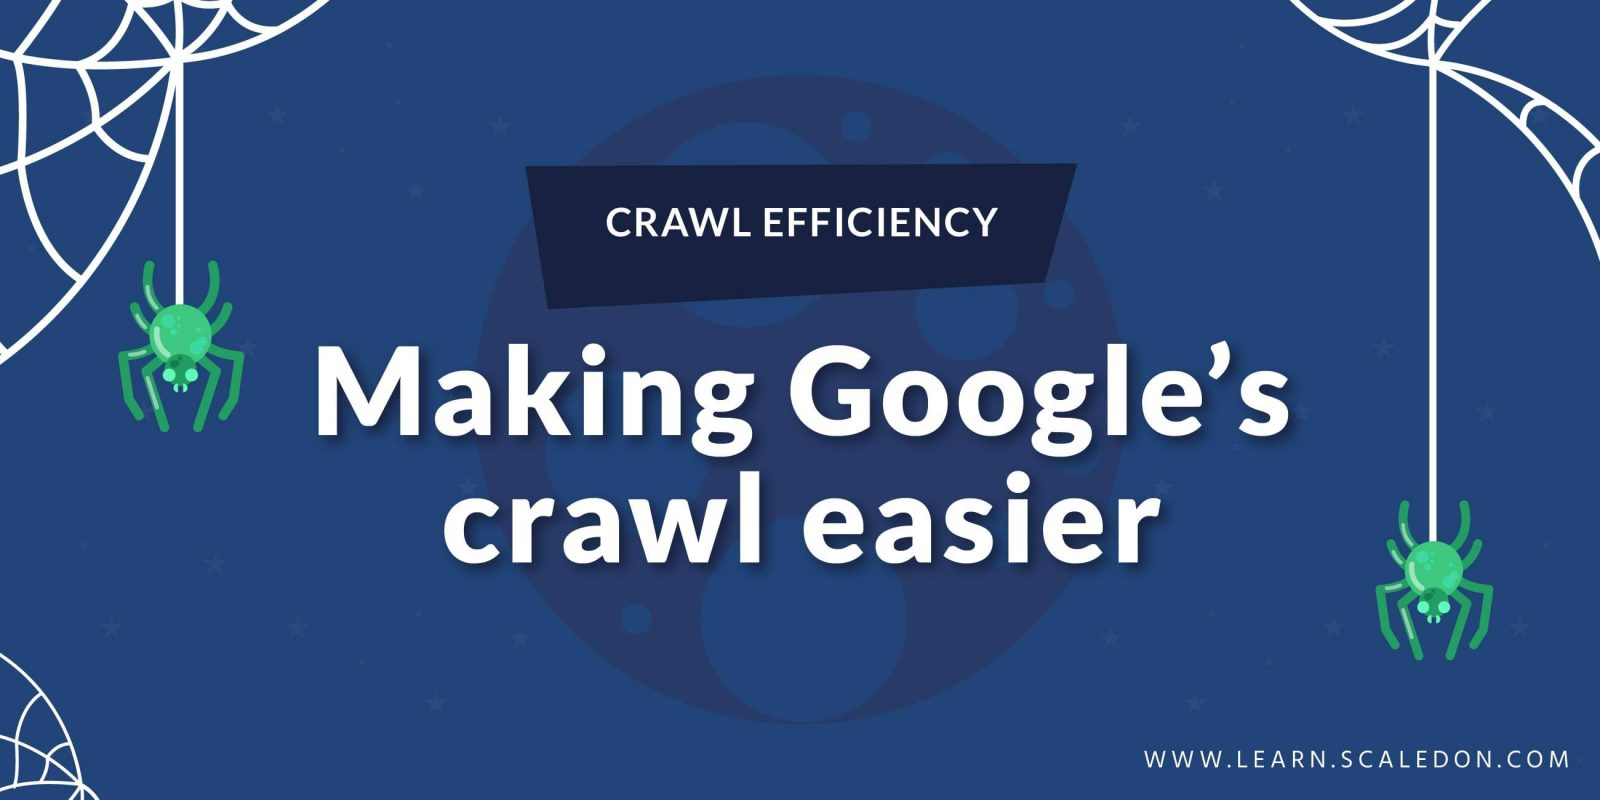 Crawl efficiency: Making Google's crawl easier